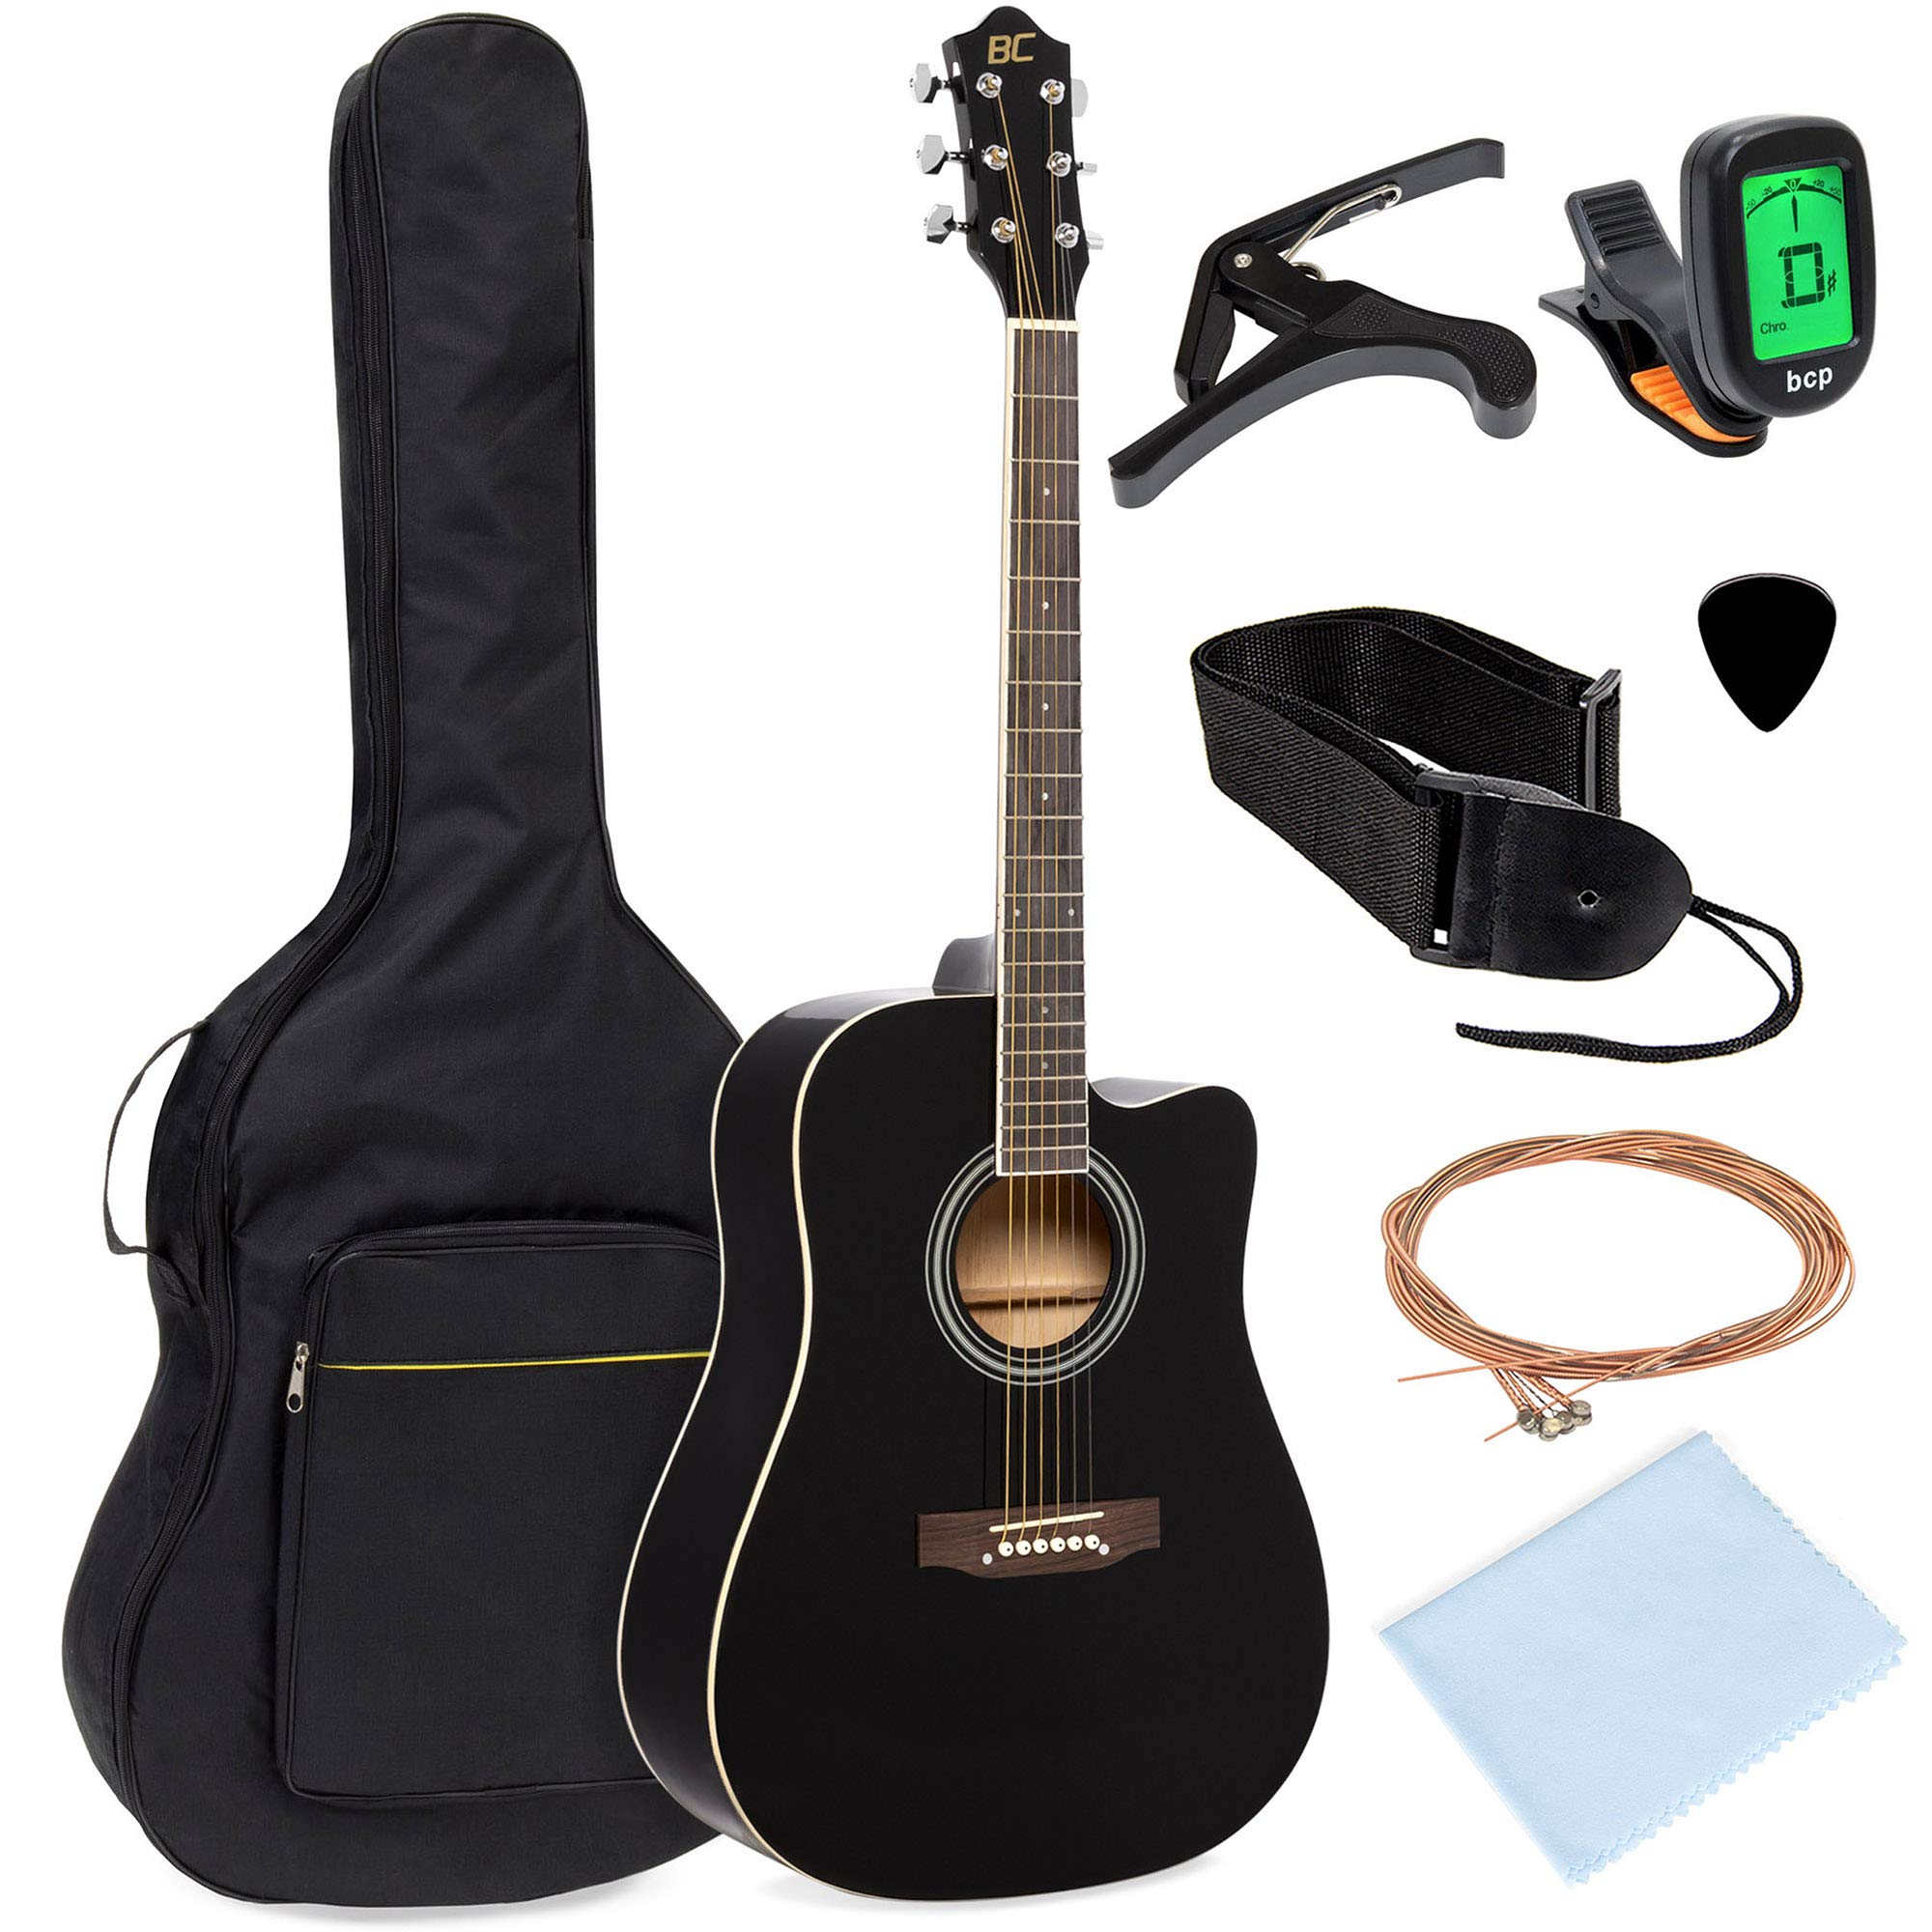 Best Choice Products 41in Full Size Beginner Acoustic Cutaway Guitar Set w/Case, Strap, Capo, Strings, Tuner - Black by Best Choice Products